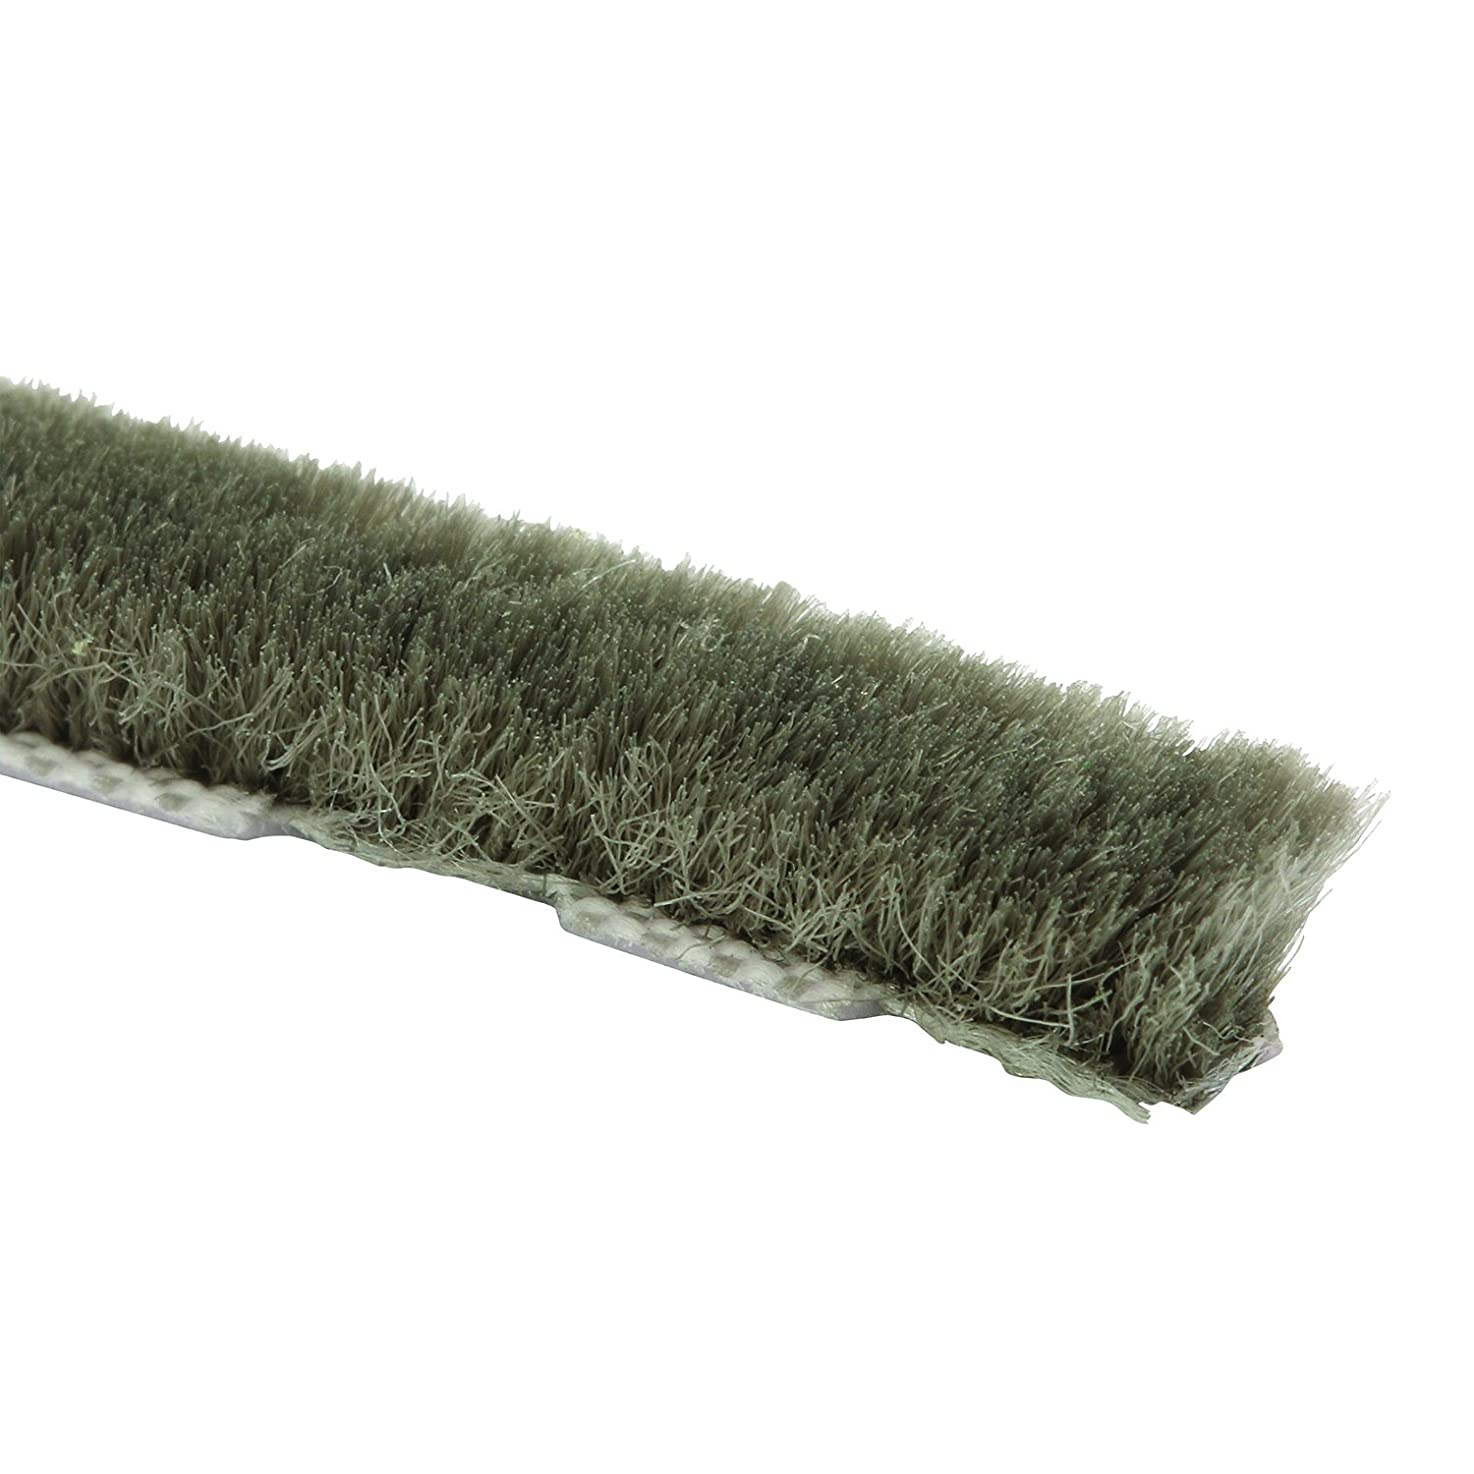 Prime-Line Products P 8760 Zipper Pile Weatherstrip for Windows & Doors, 250 ft., Grey, Owens Corning, Non-Adhesive